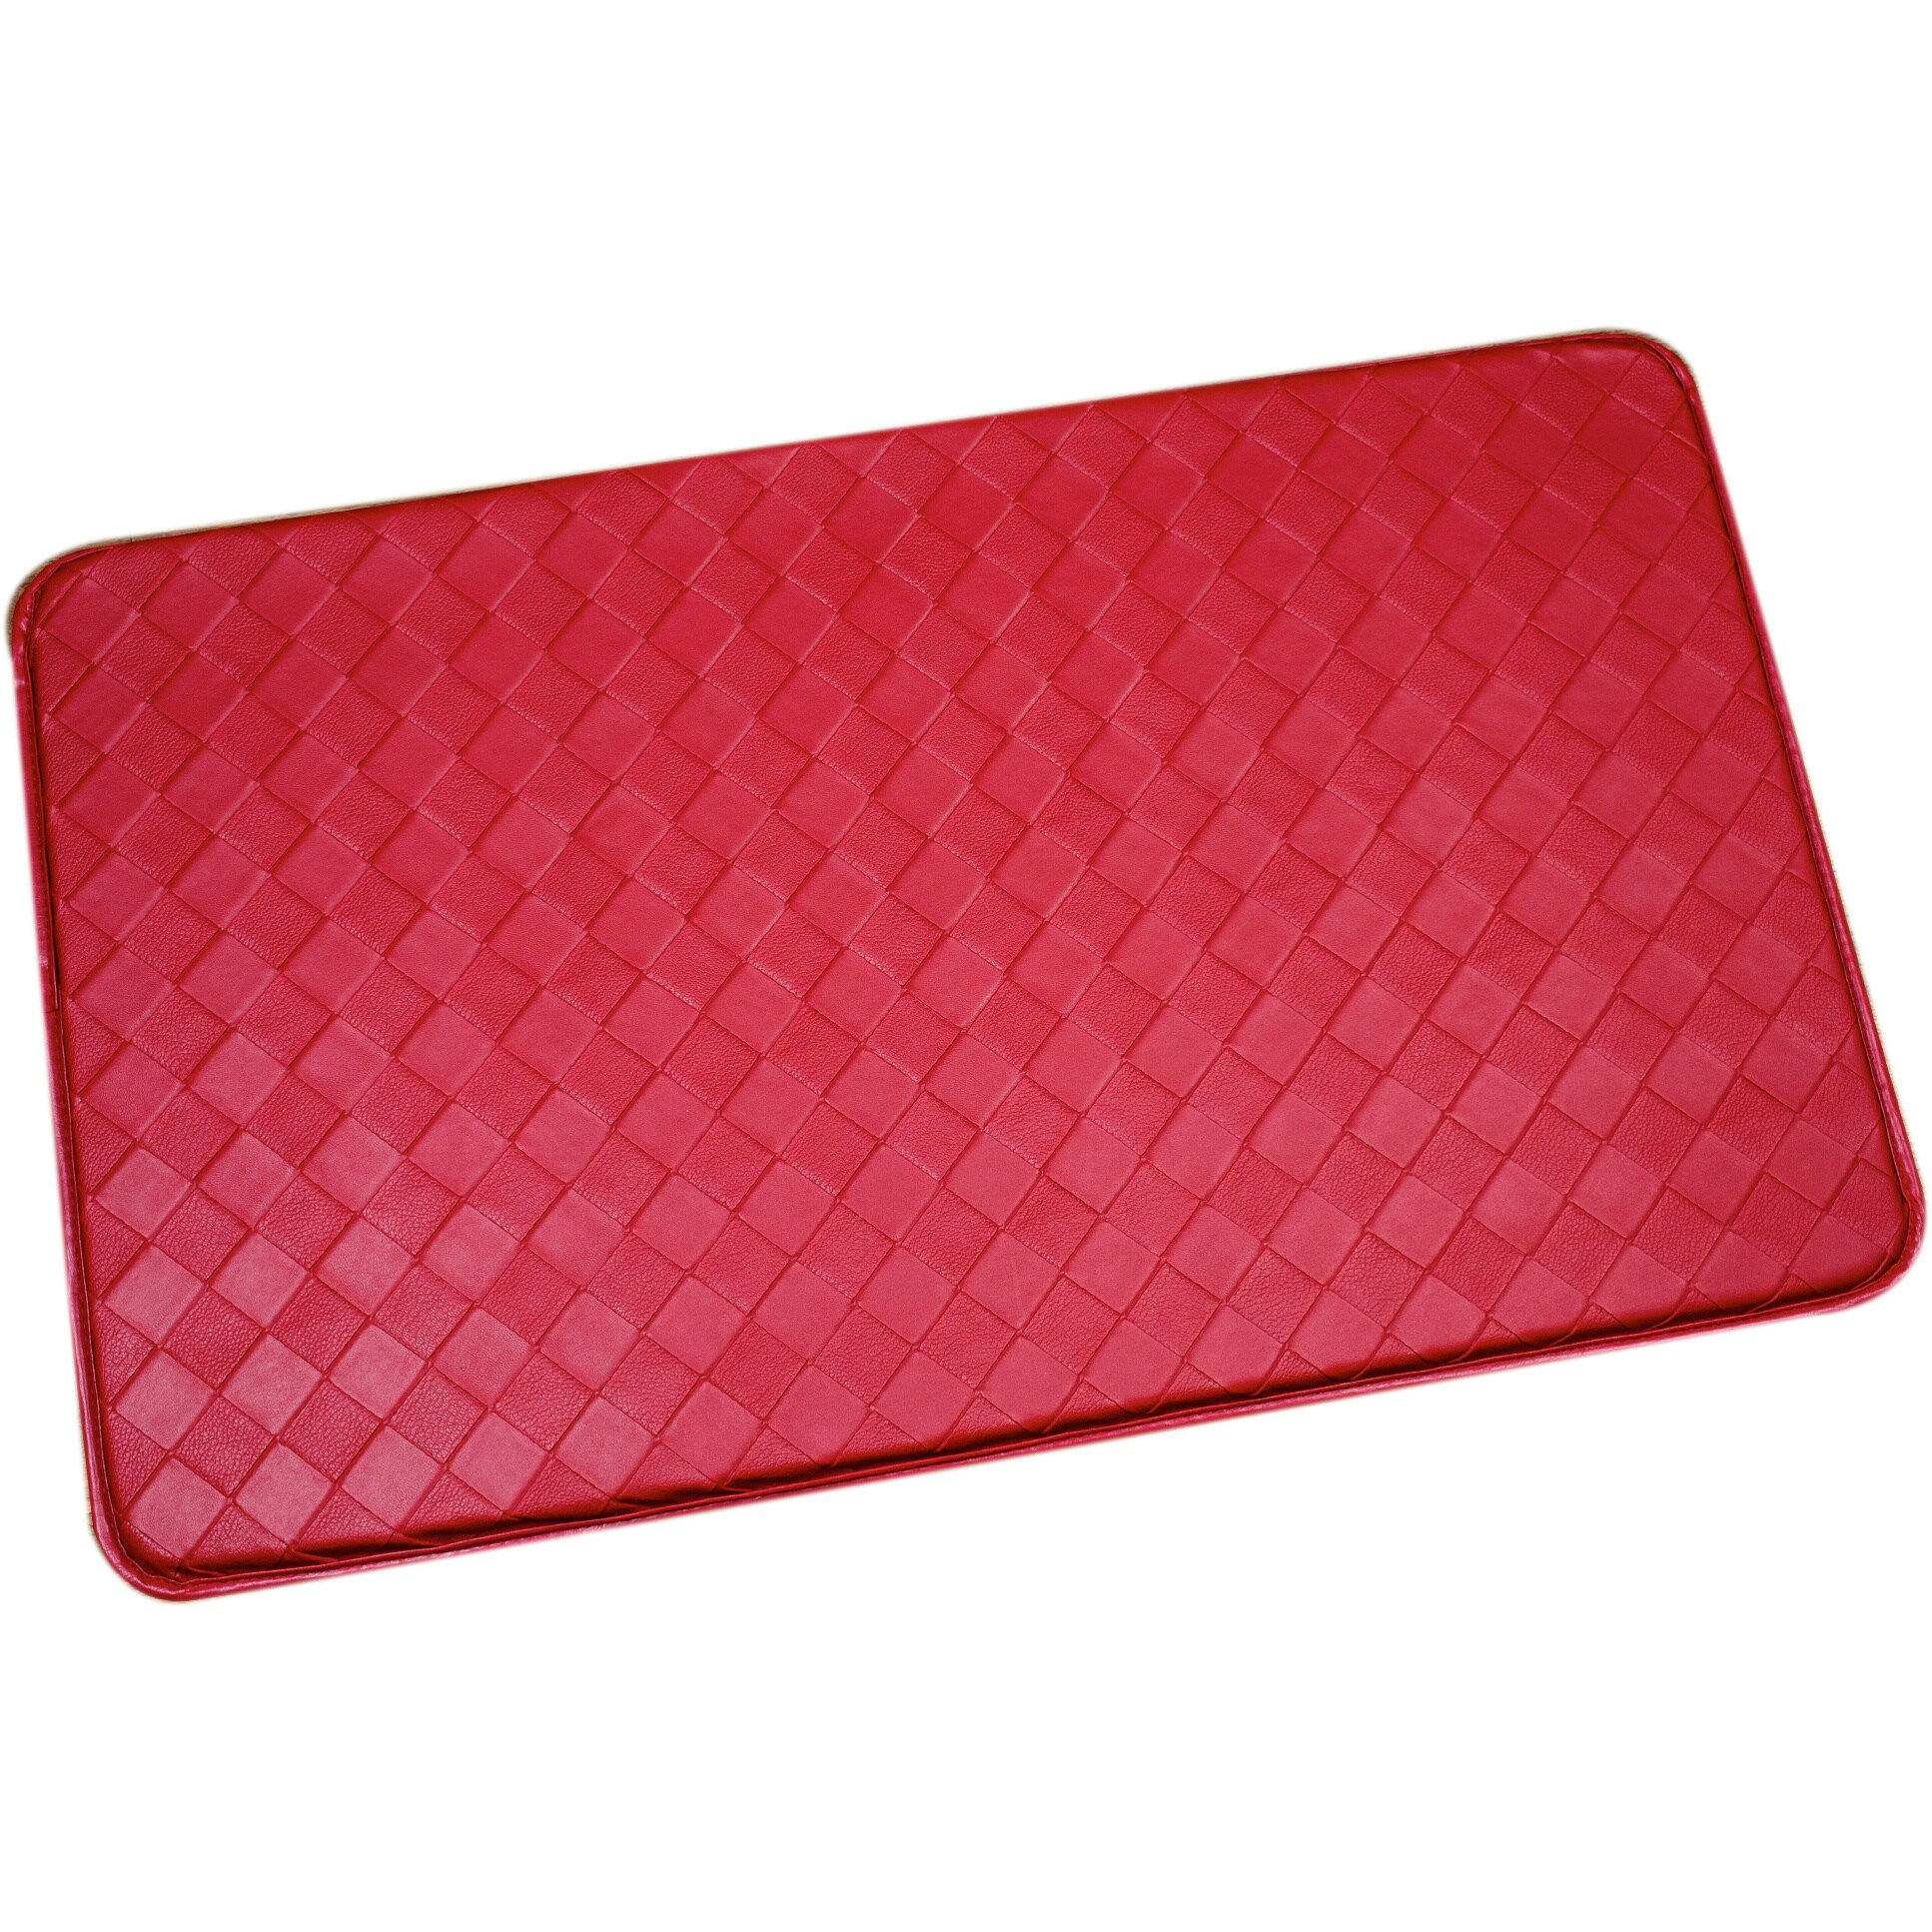 Shop Diamond Anti Fatigue Kitchen Floor Mat (Red) - Free Shipping On Orders Over $45 - Overstock - 9332575